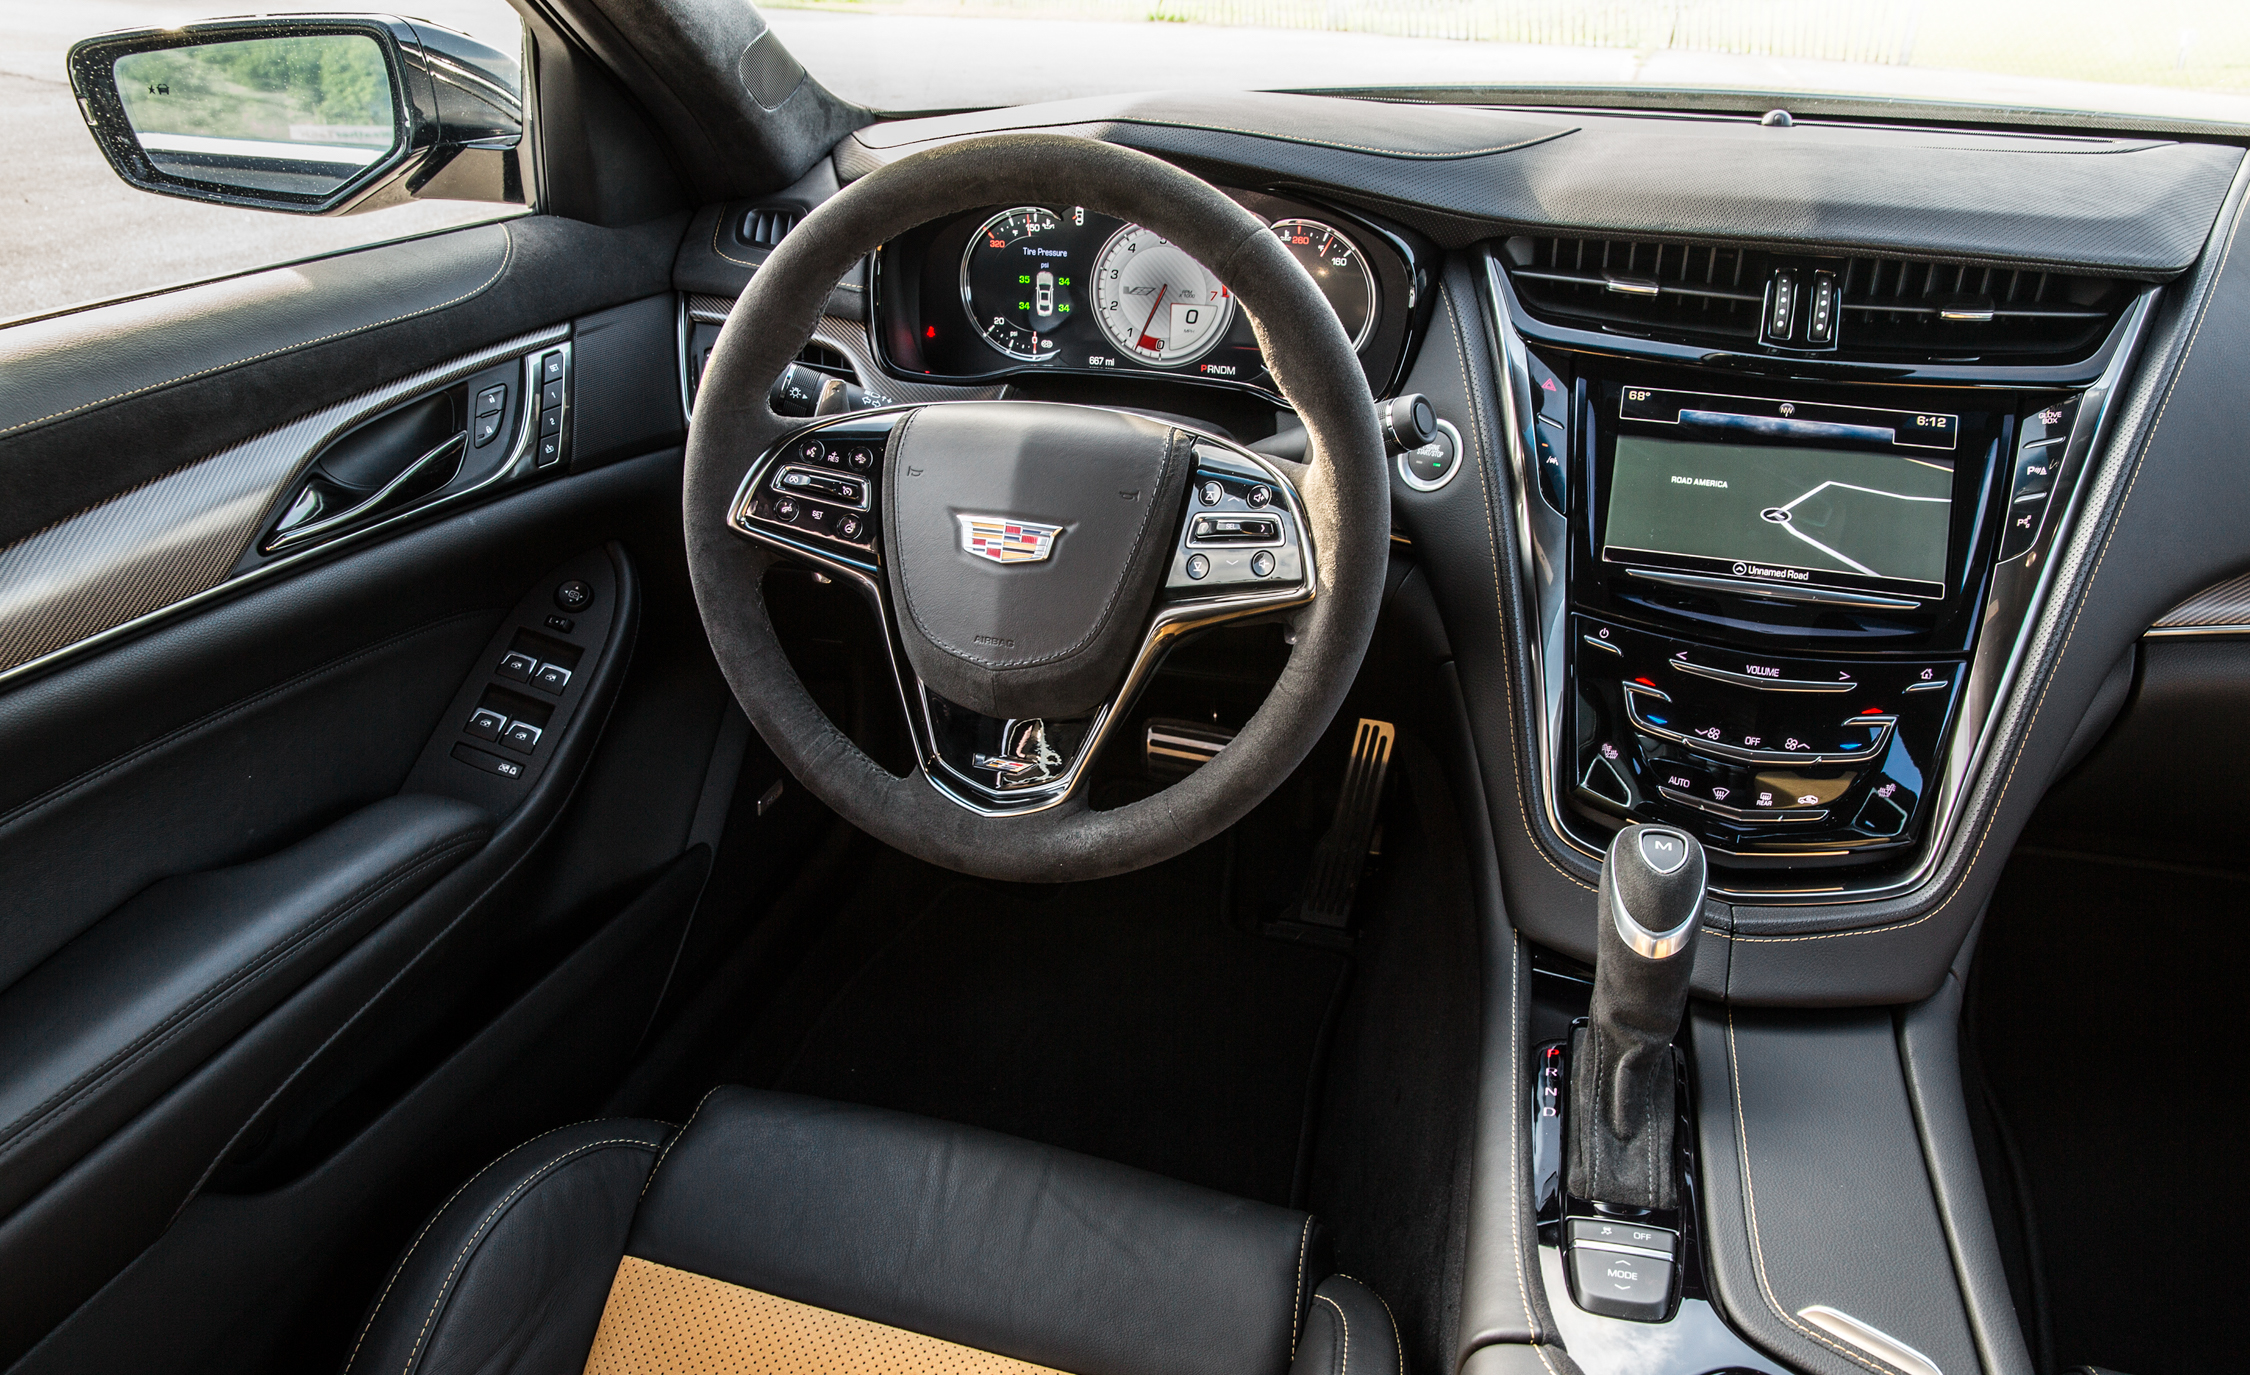 2016 cadillac cts v impressions 9159 cars performance. Black Bedroom Furniture Sets. Home Design Ideas